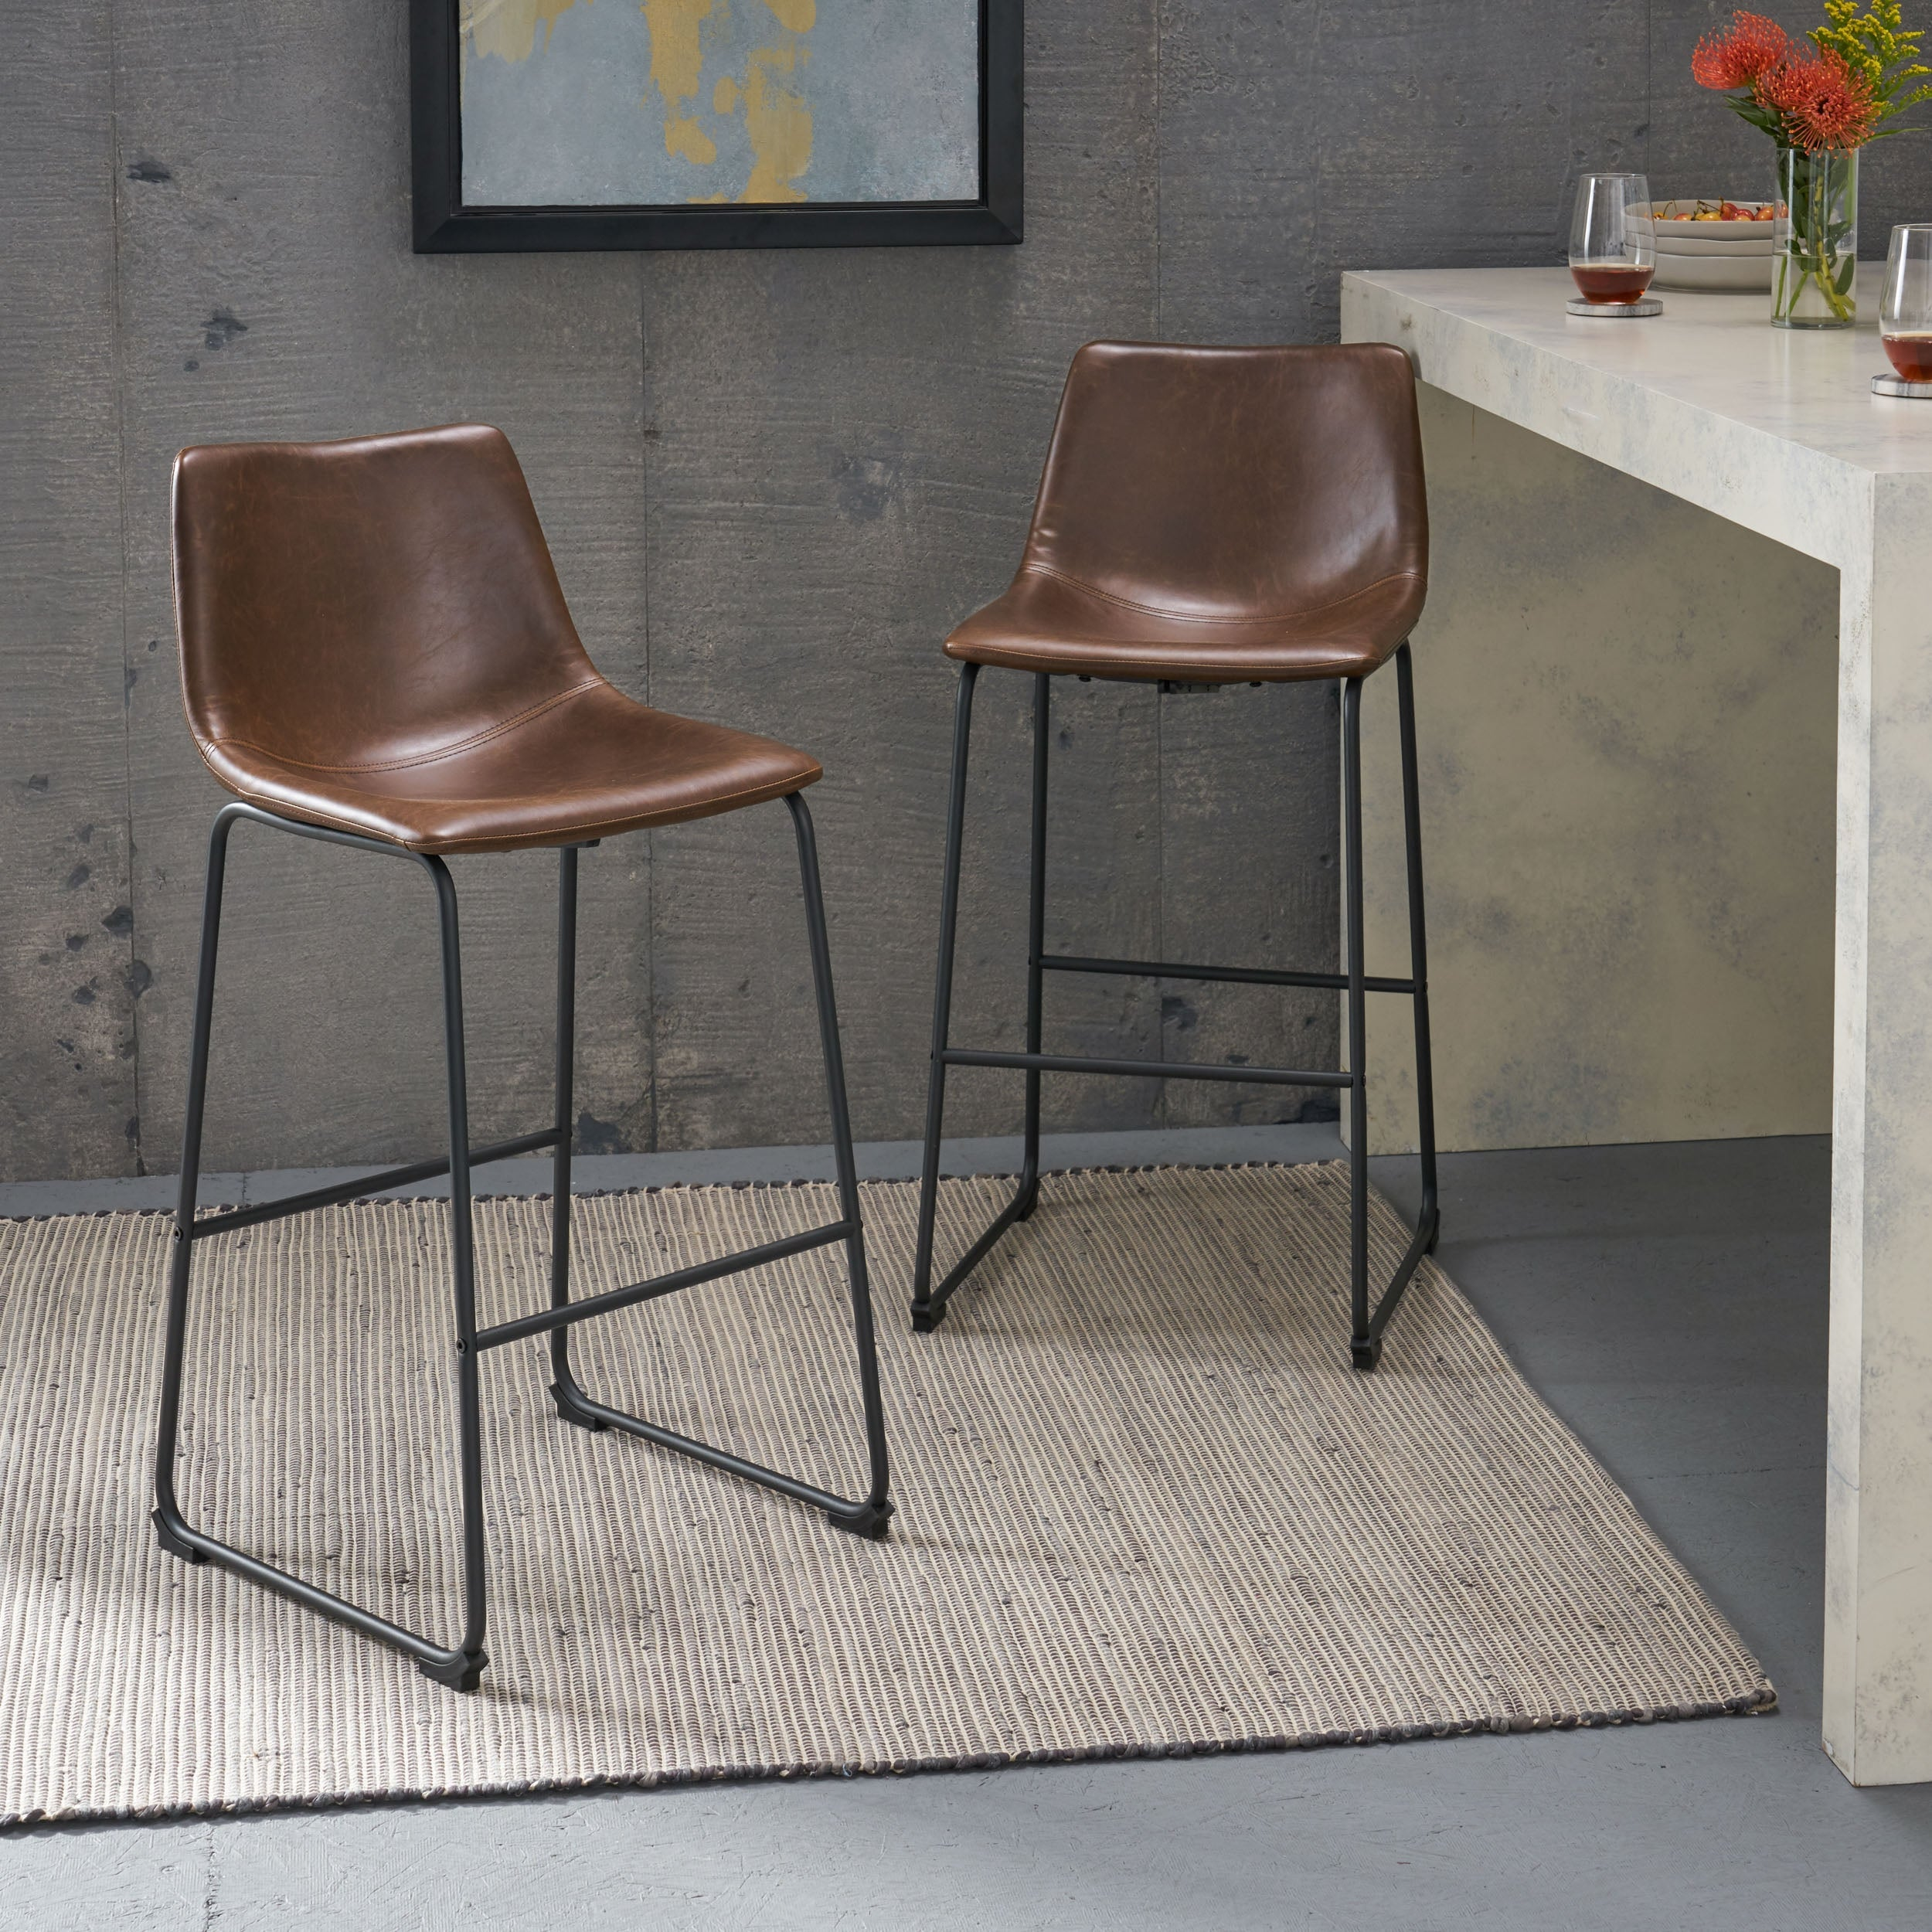 Carbon Loft Diggory 30 Inch Faux Leather Barstools Set Of 2 On Sale Overstock 12026956